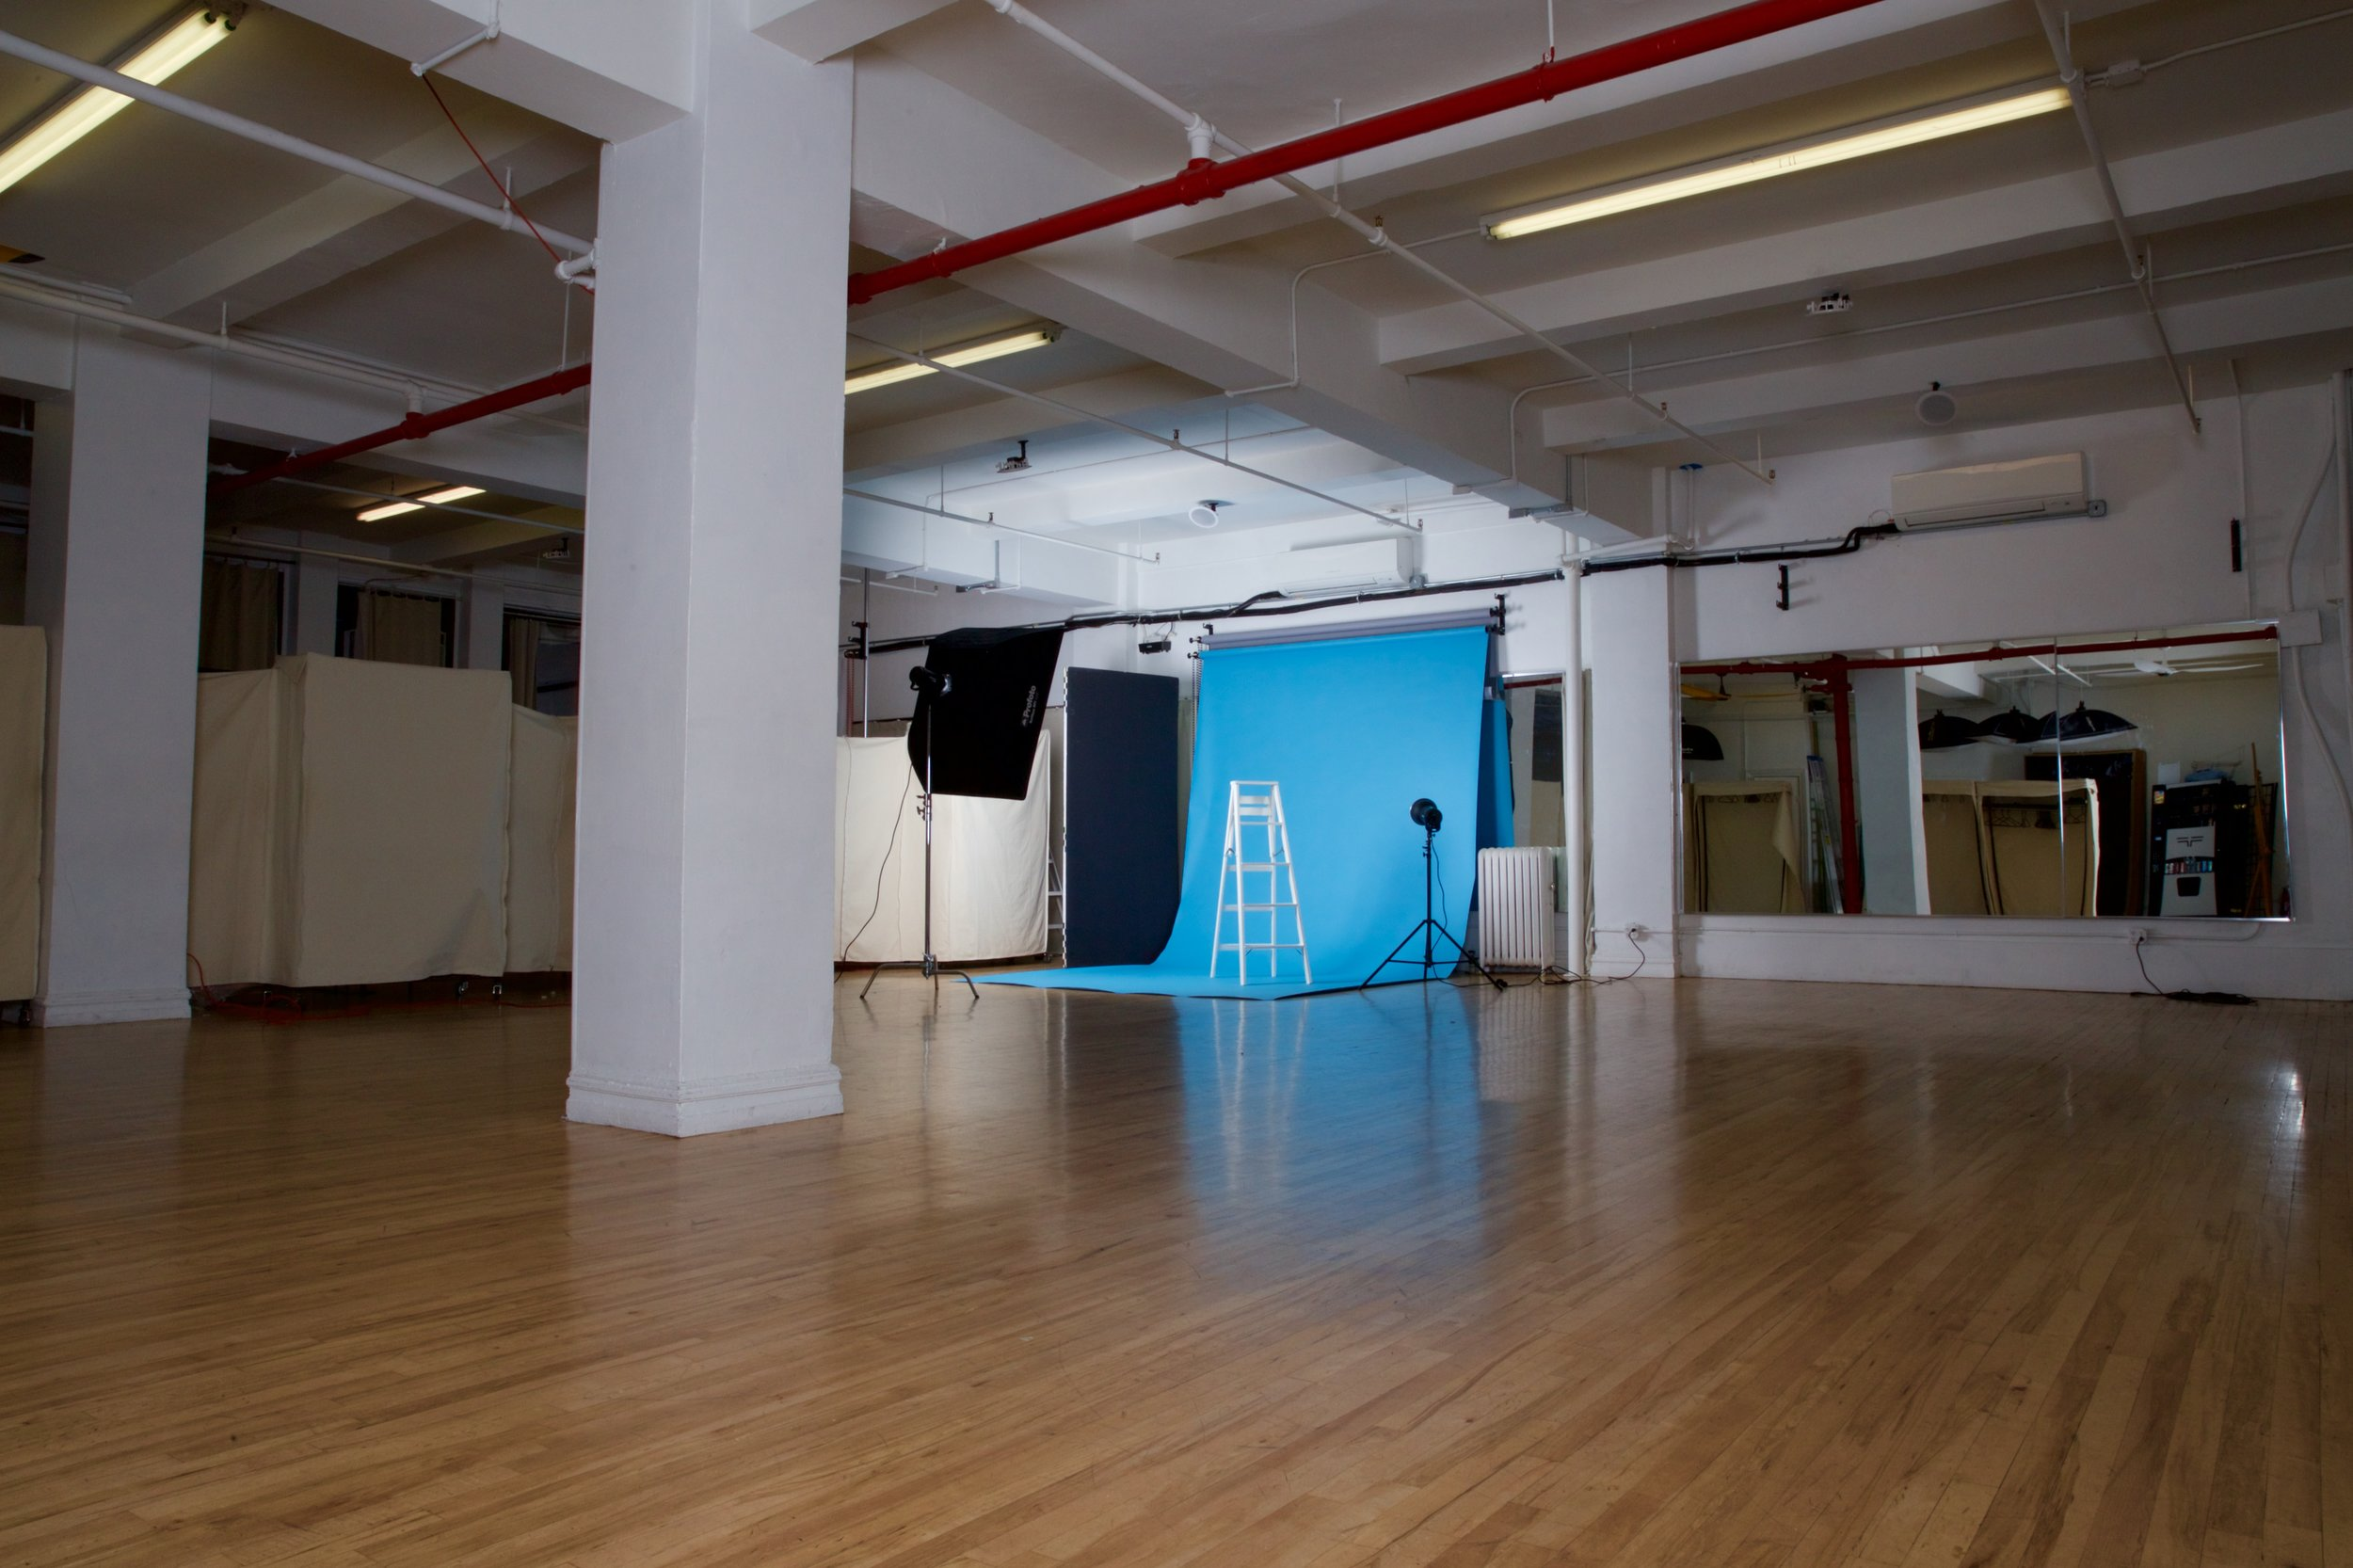 STUDIO 2+3 - Photo: $80/hr, $600/day